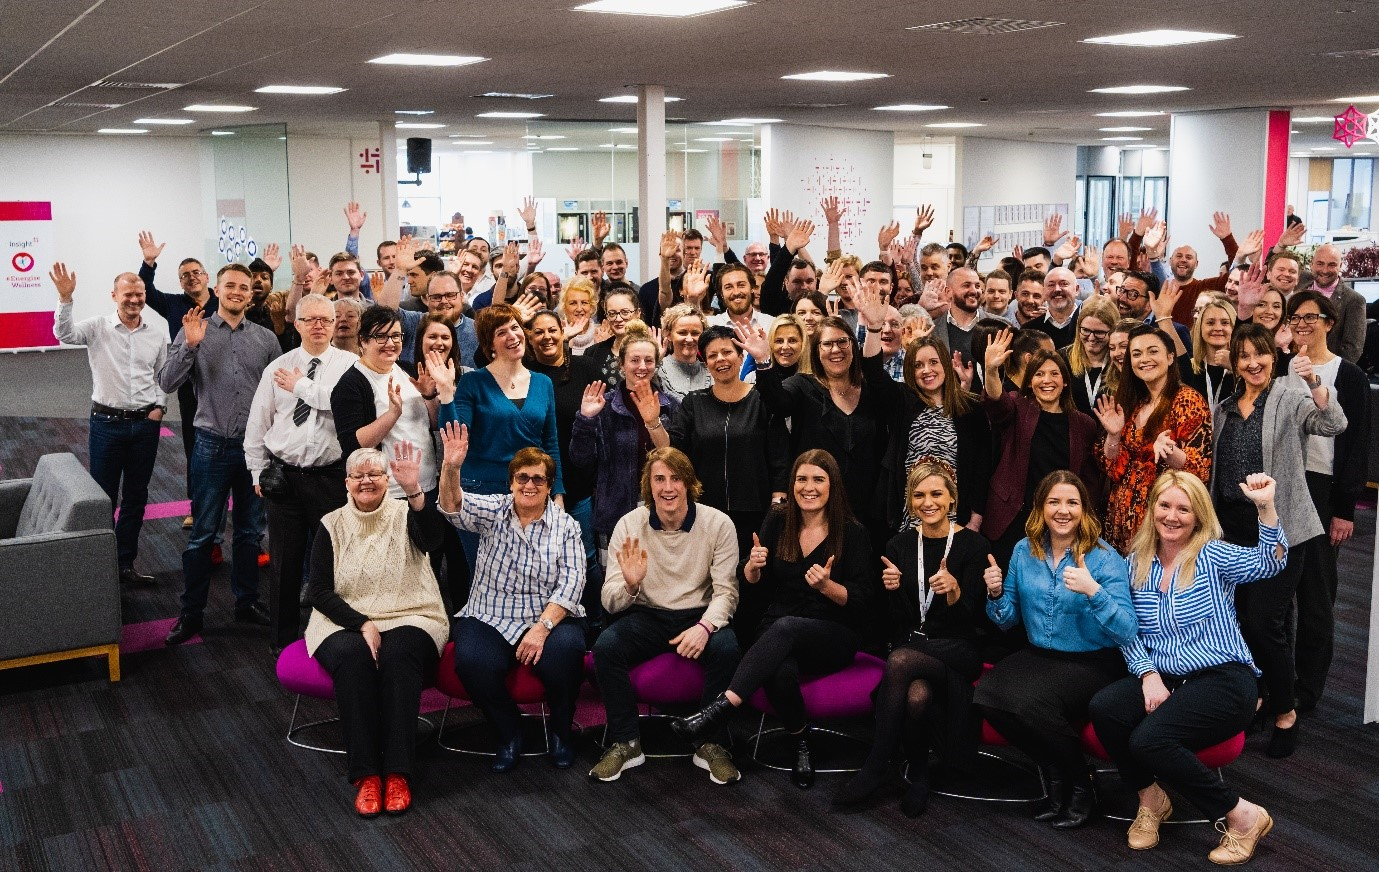 Hunger, Heart, Harmony: Inside Insight's Great Workplace Culture